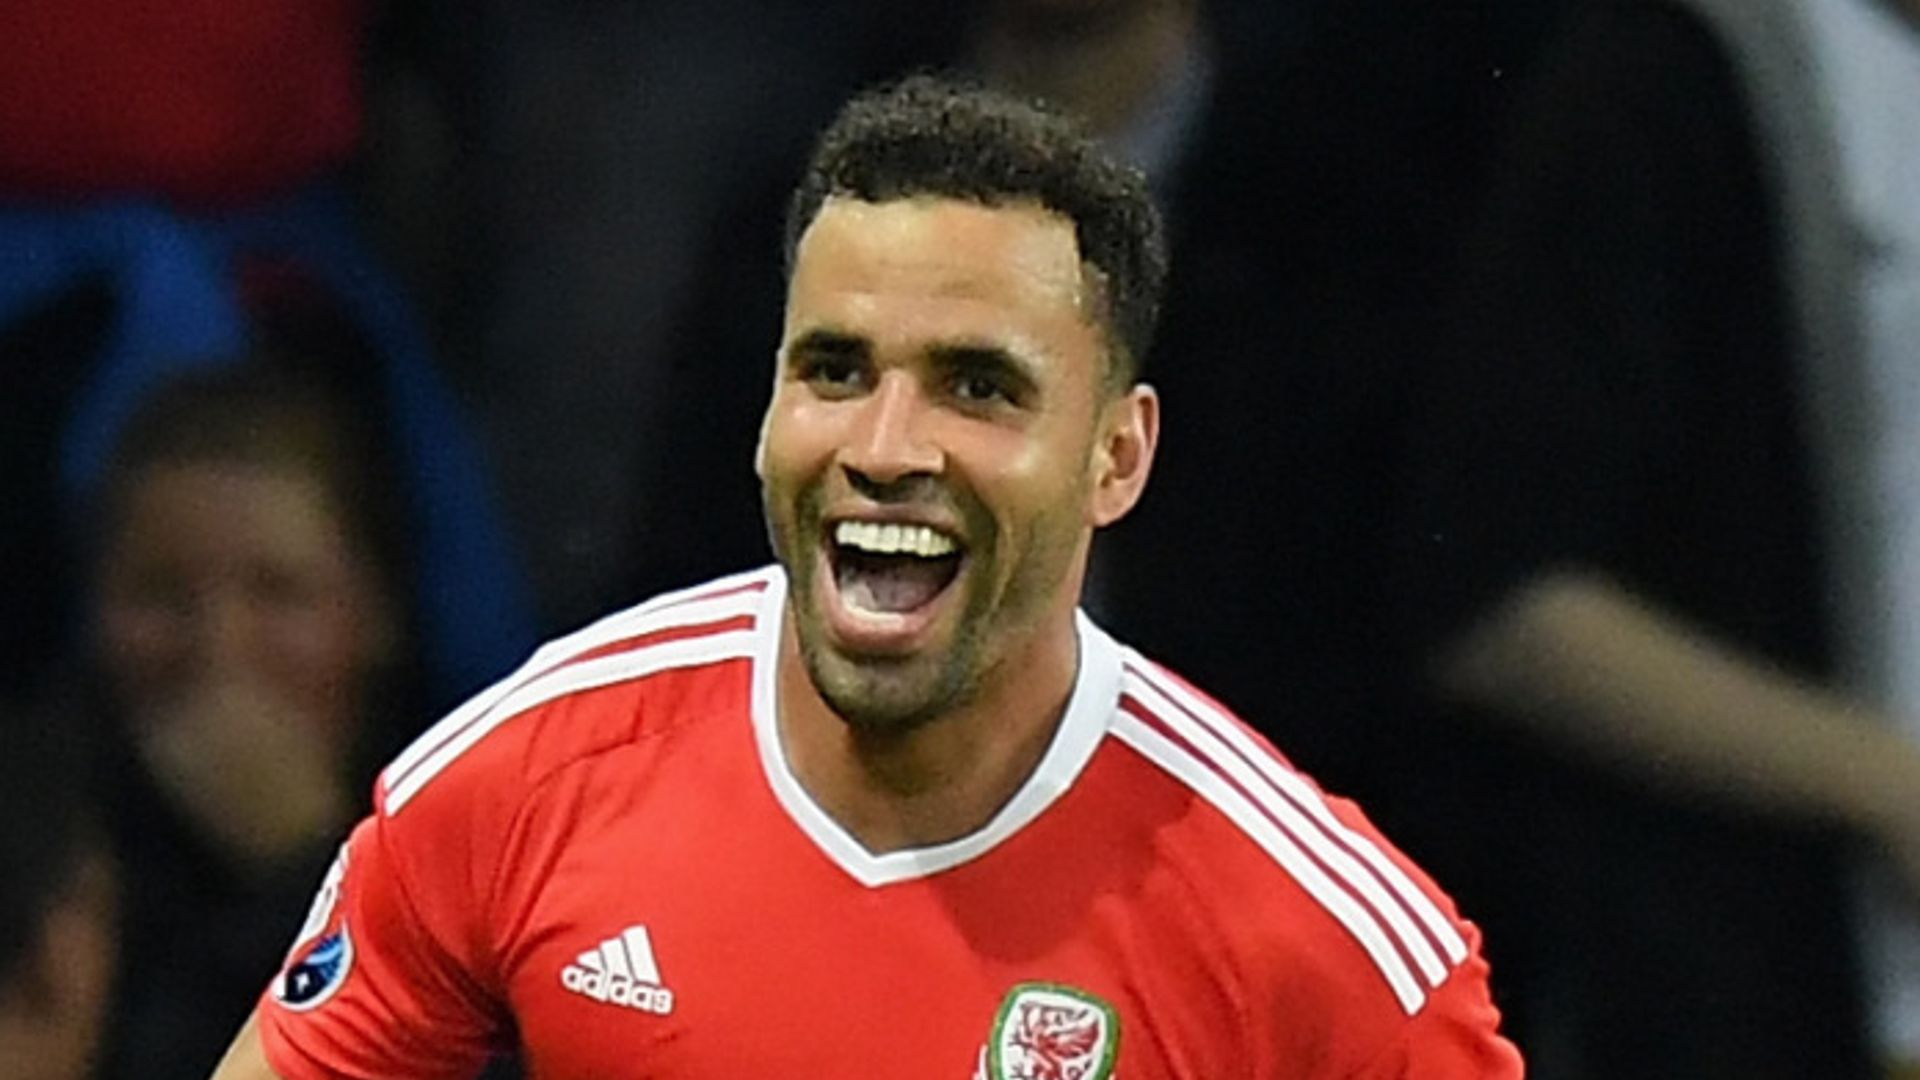 Euro Memories: Robson-Kanu on that goal vs Belgium